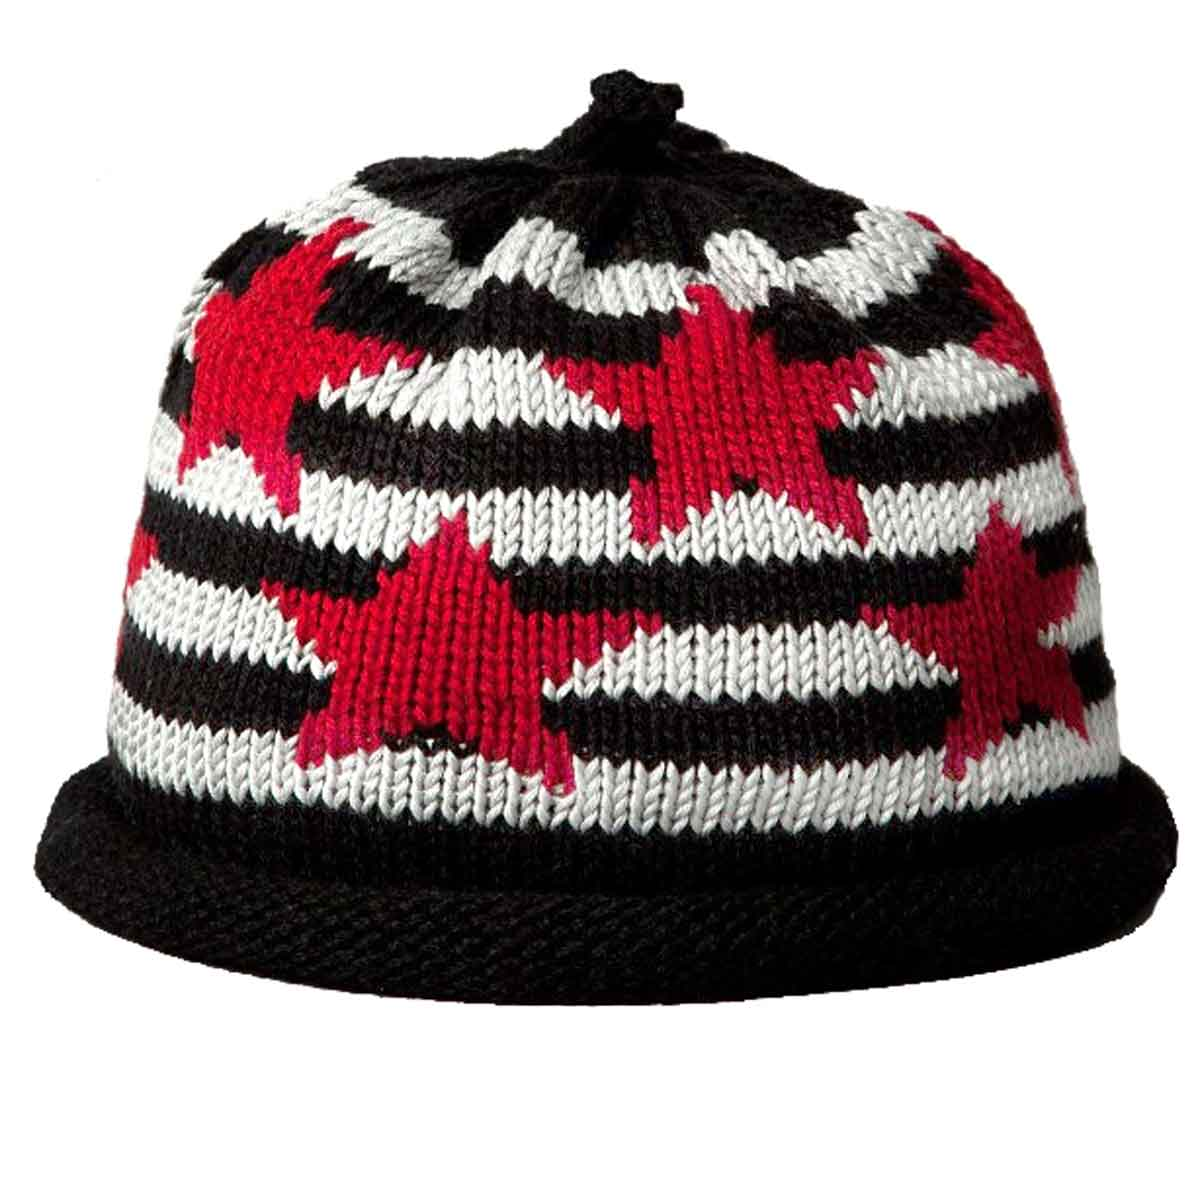 Red Stars on Black Striped Knit Hat - Margareta Horn Design 3cc19a7357d